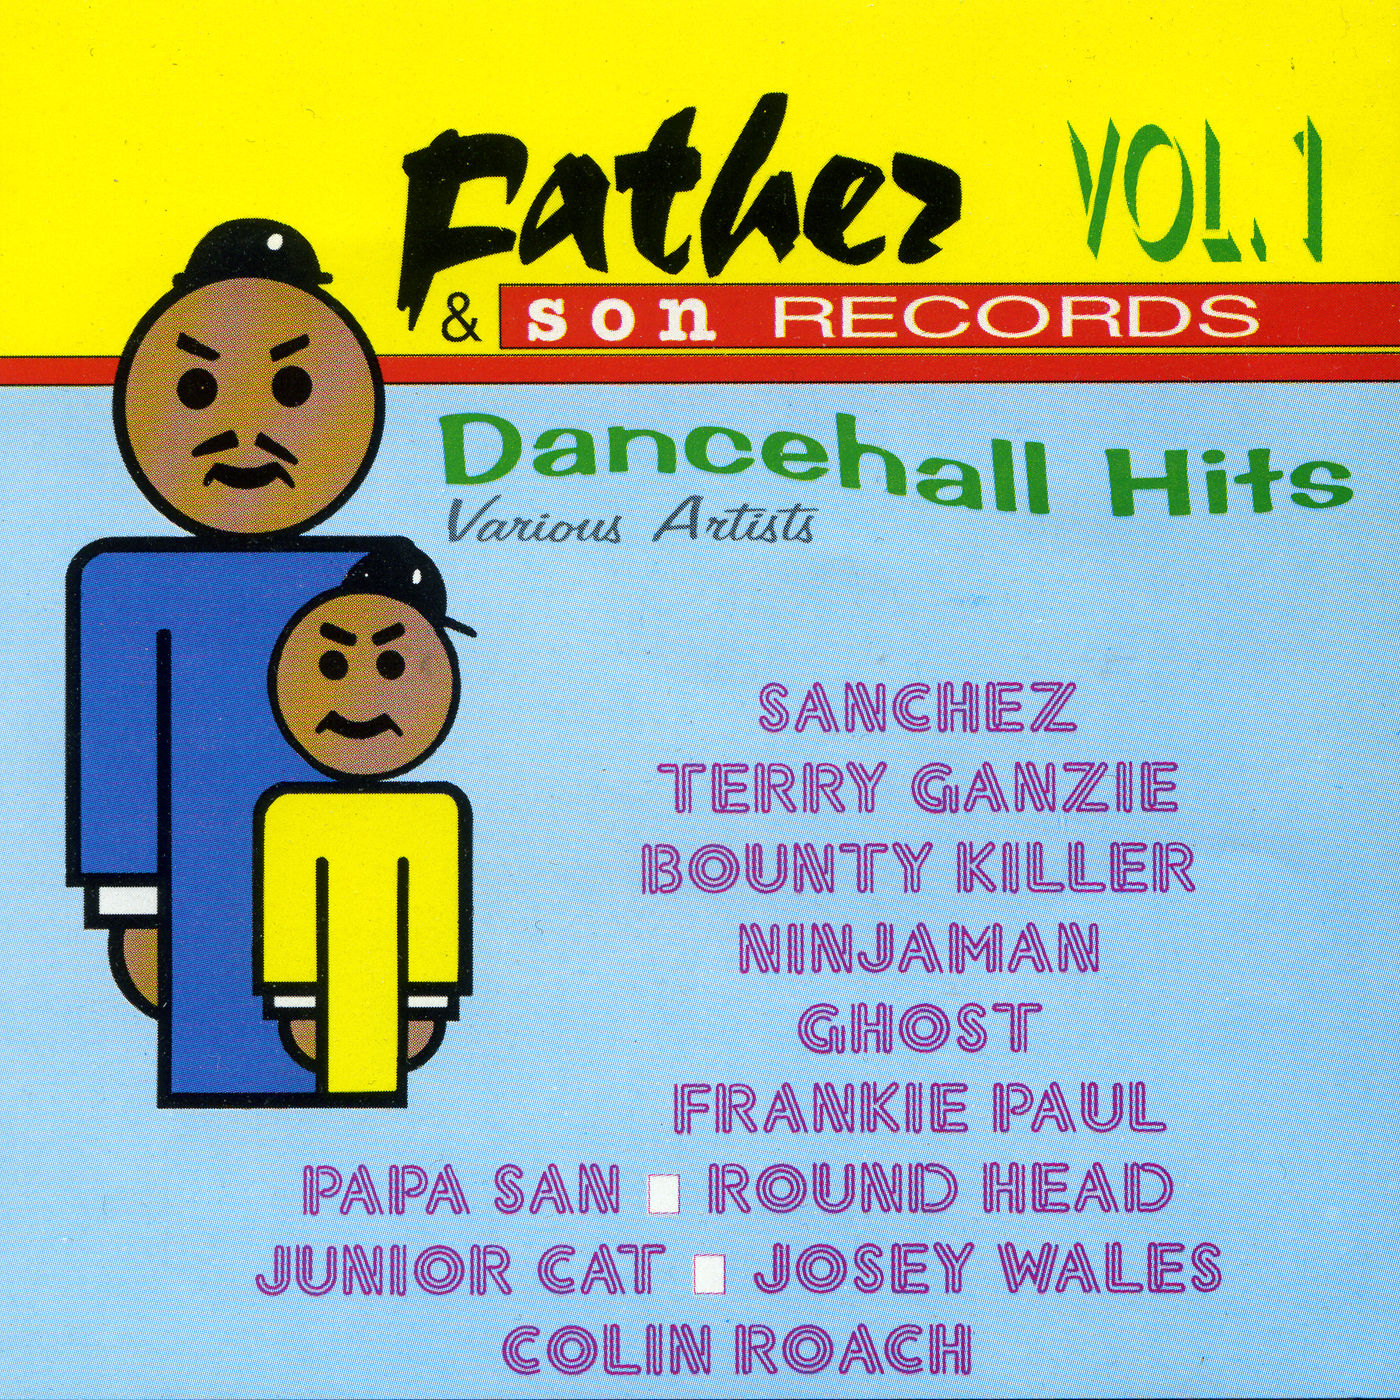 Father & Son Dancehall Hits Vol. 1